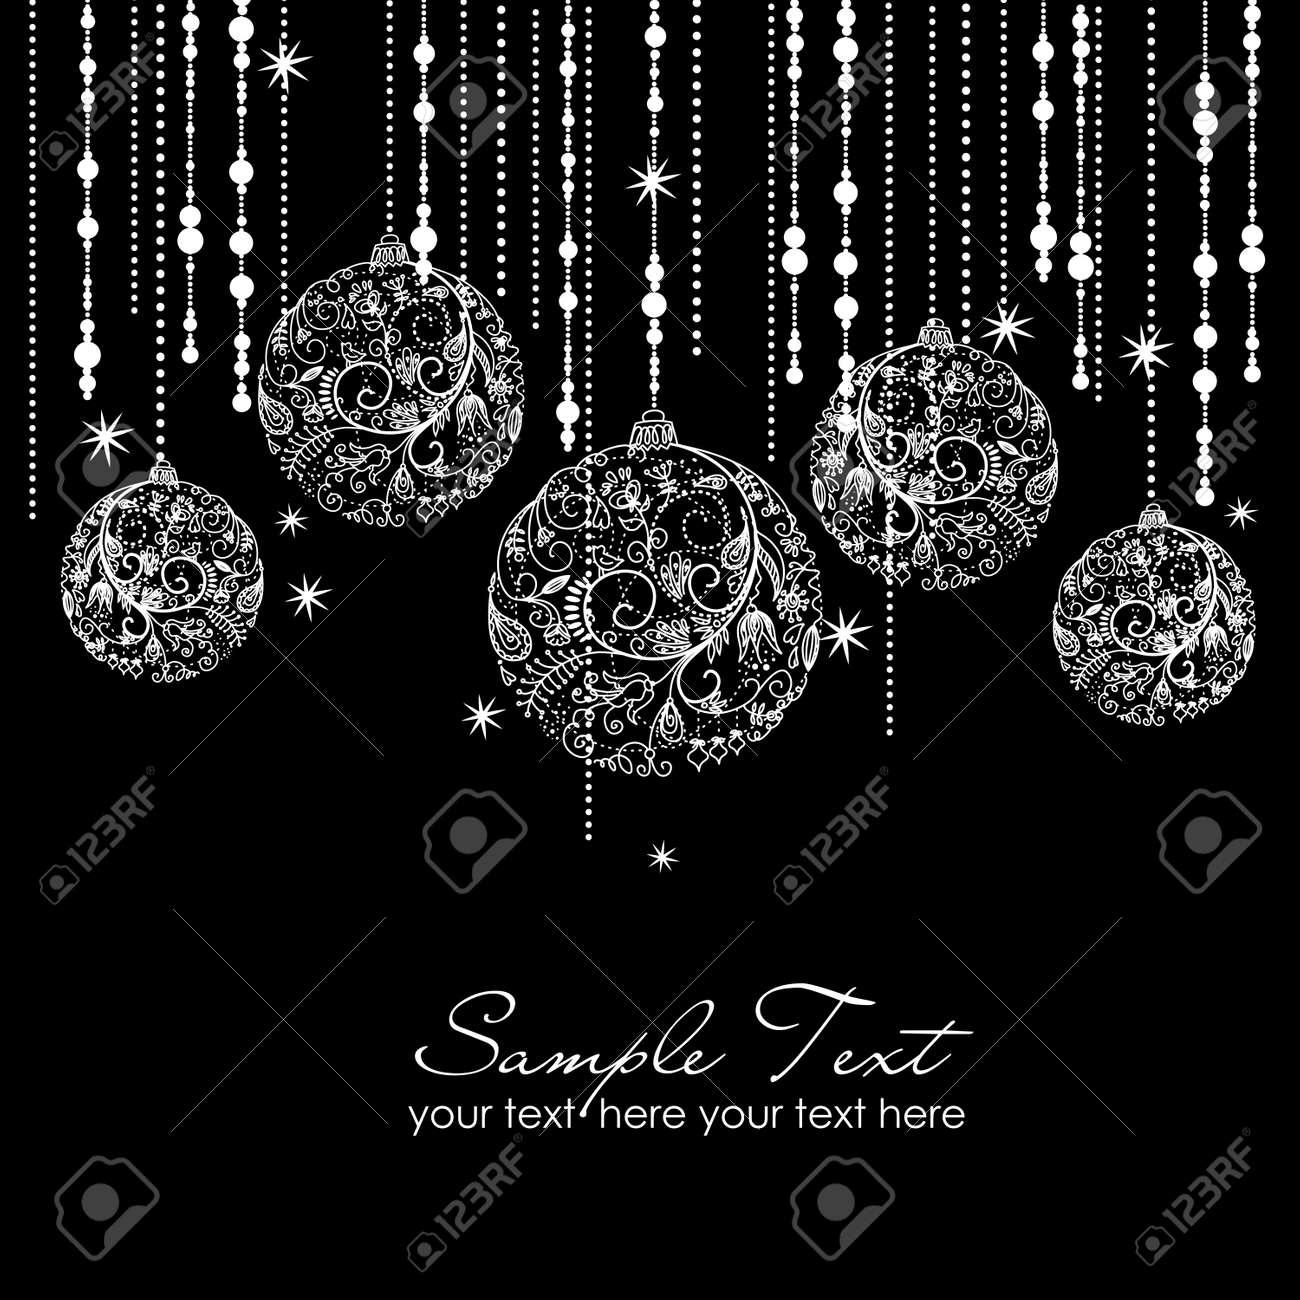 Black and White Christmas ornaments Stock Vector - 16681203